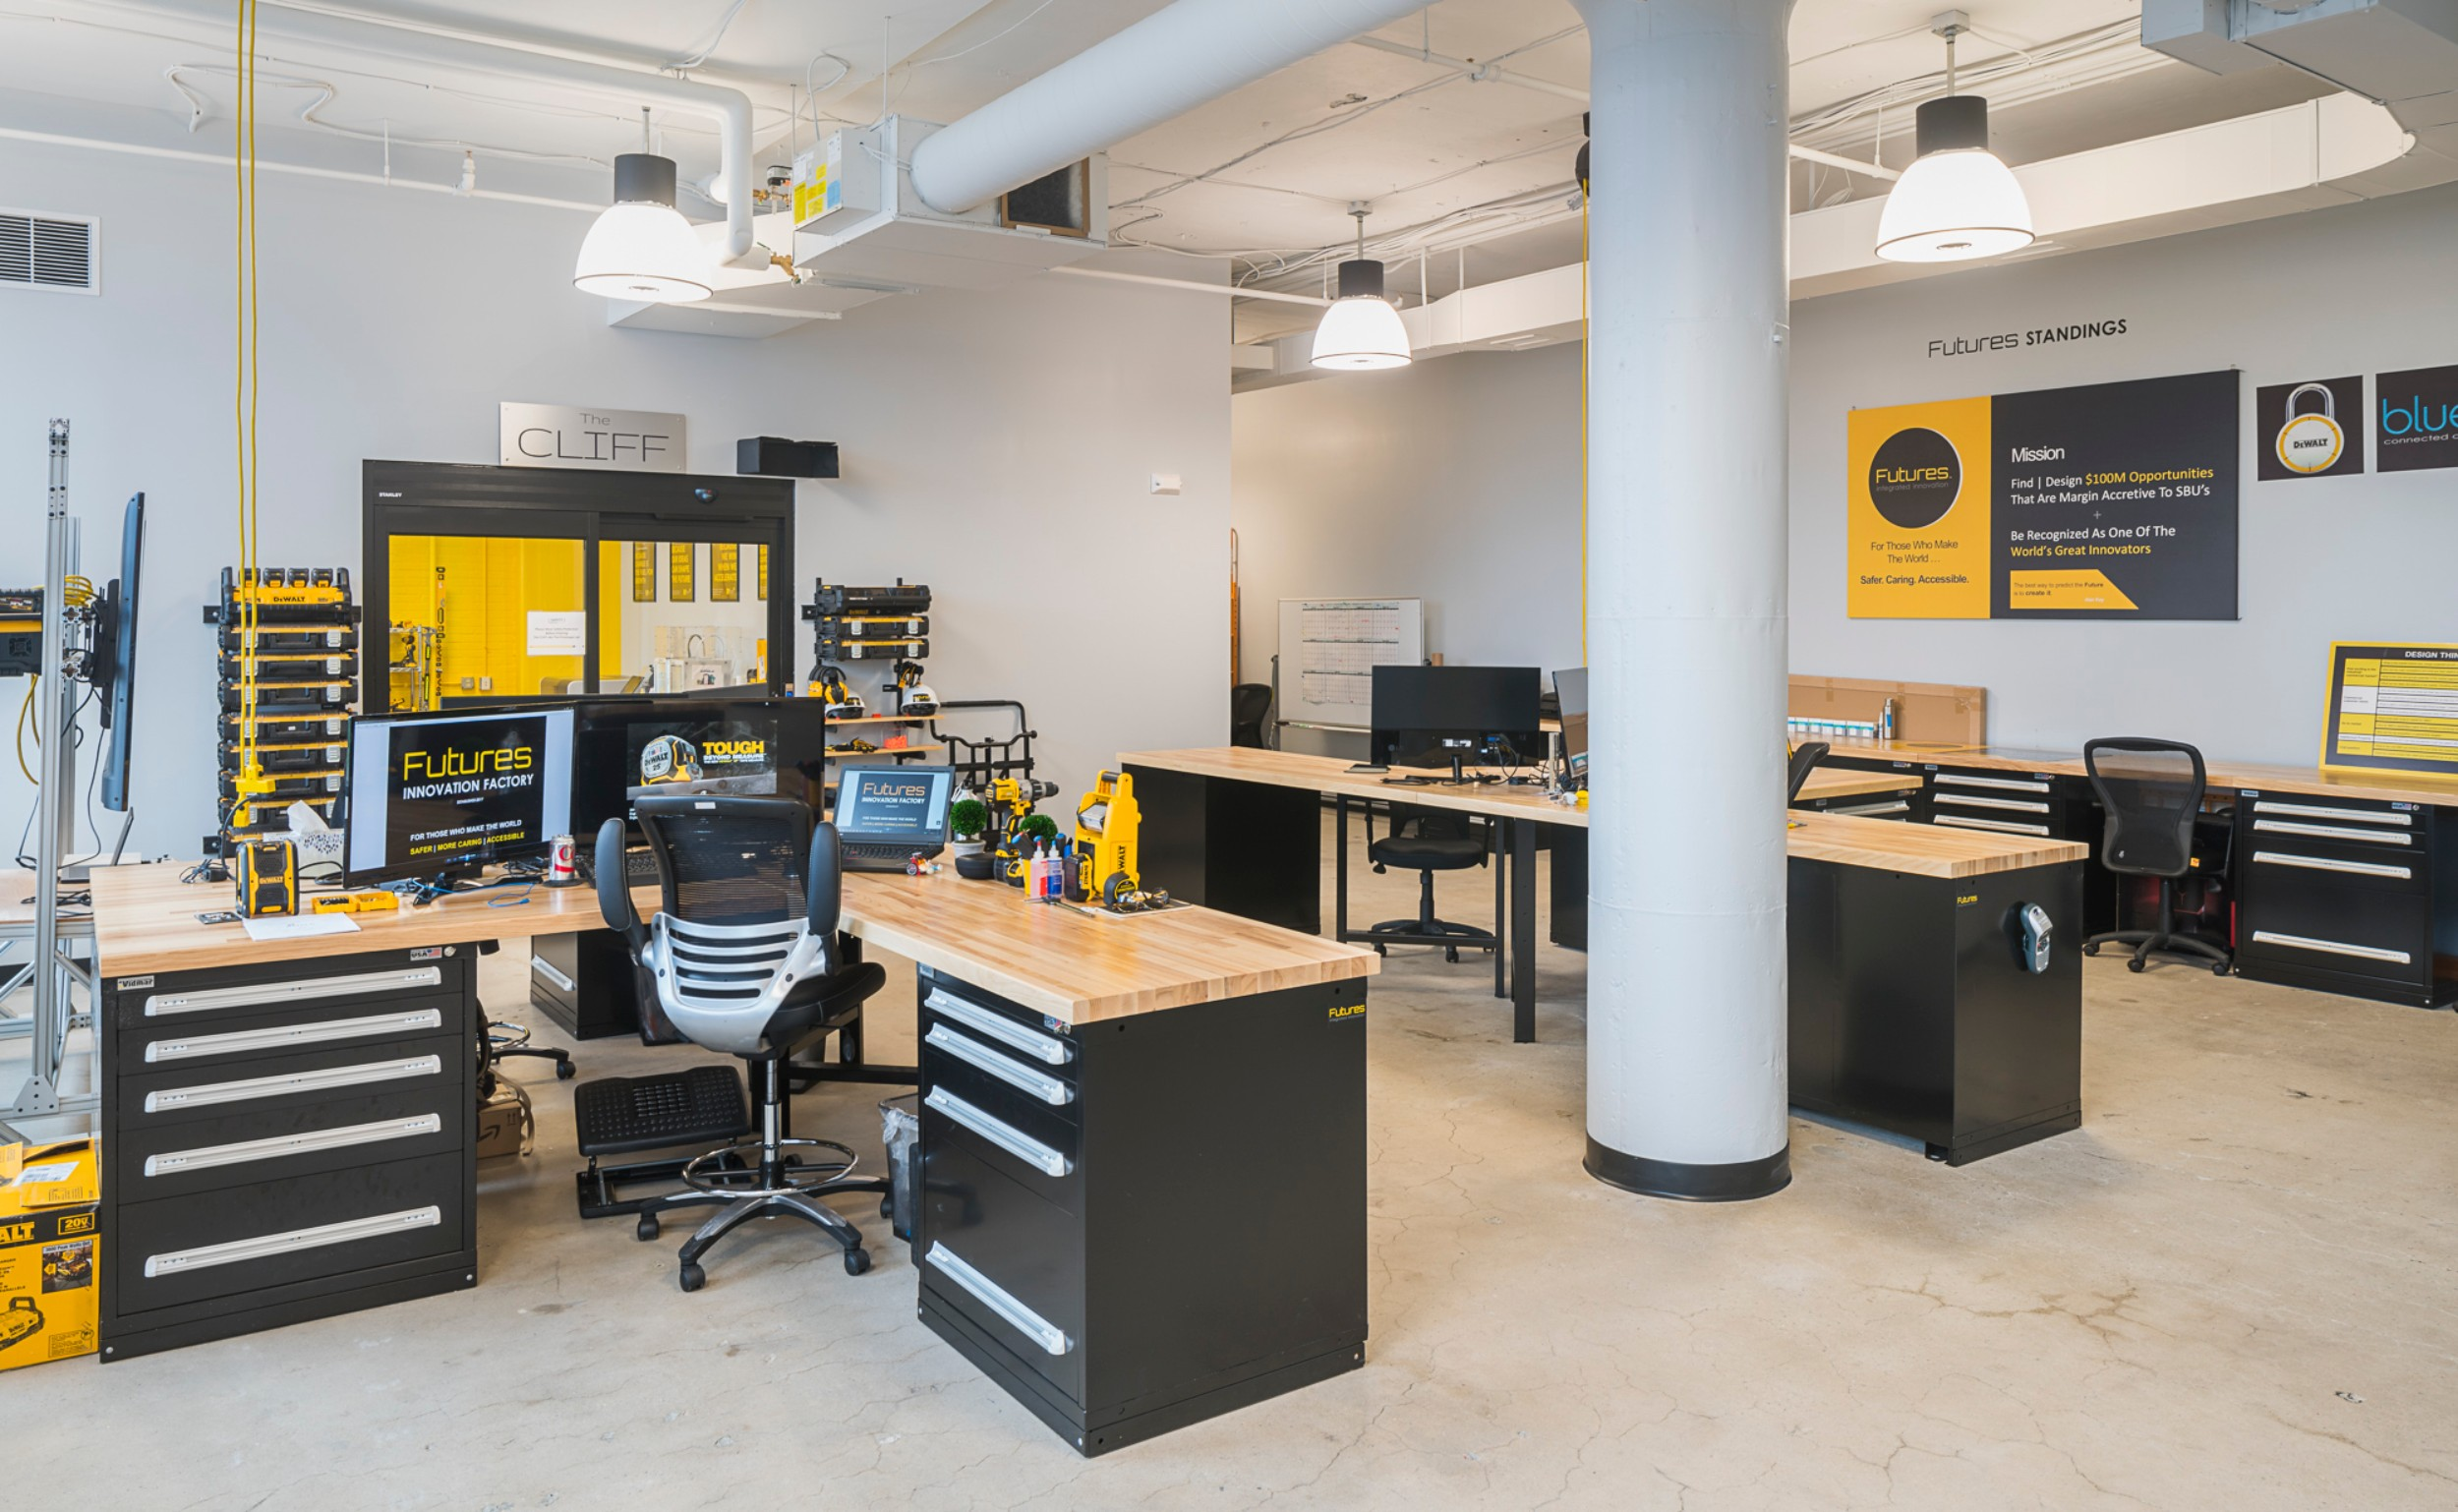 Stanley_Black_Decker_Corderman_Construction_Work_Station_Area_Boston_Seaport.jpg